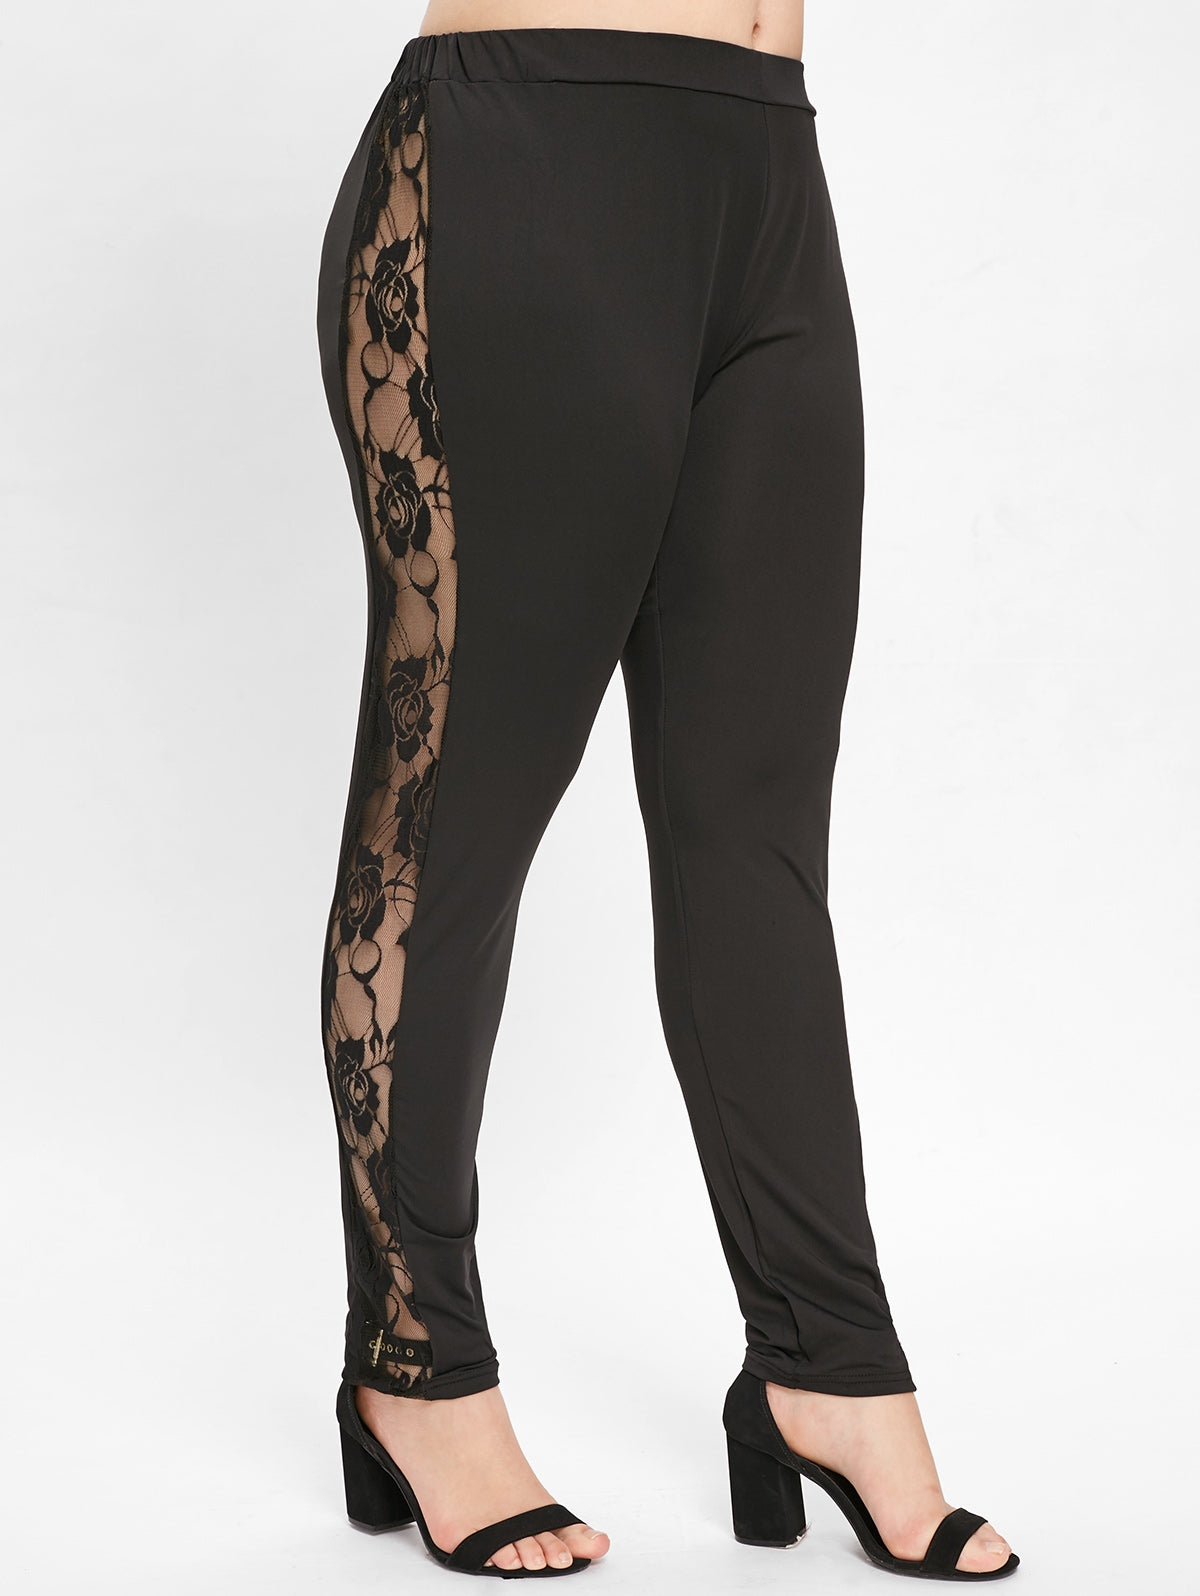 Side Lace Panel Plus Size Leggings-Fashion3K